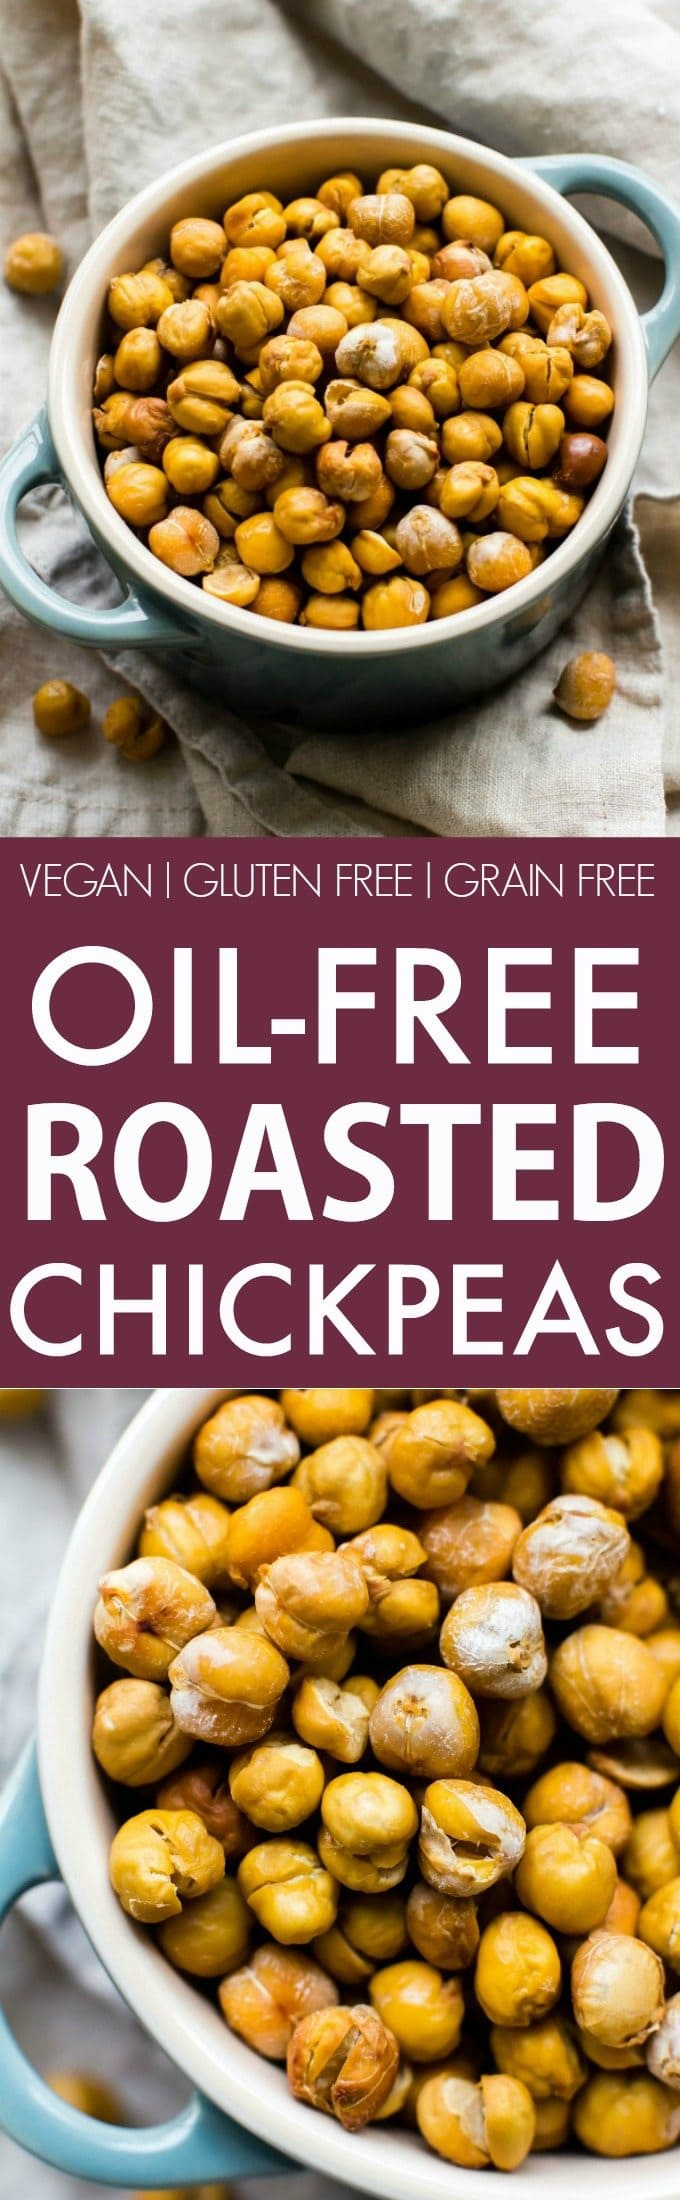 Healthy Oil-Free Roasted Chickpeas (V, GF, DF)- Easy, crispy and completely OIL-FREE chickpeas which are seriously addictive and customizable- The perfect snack! {vegan, gluten free, grain free recipe}- thebigmansworld.com